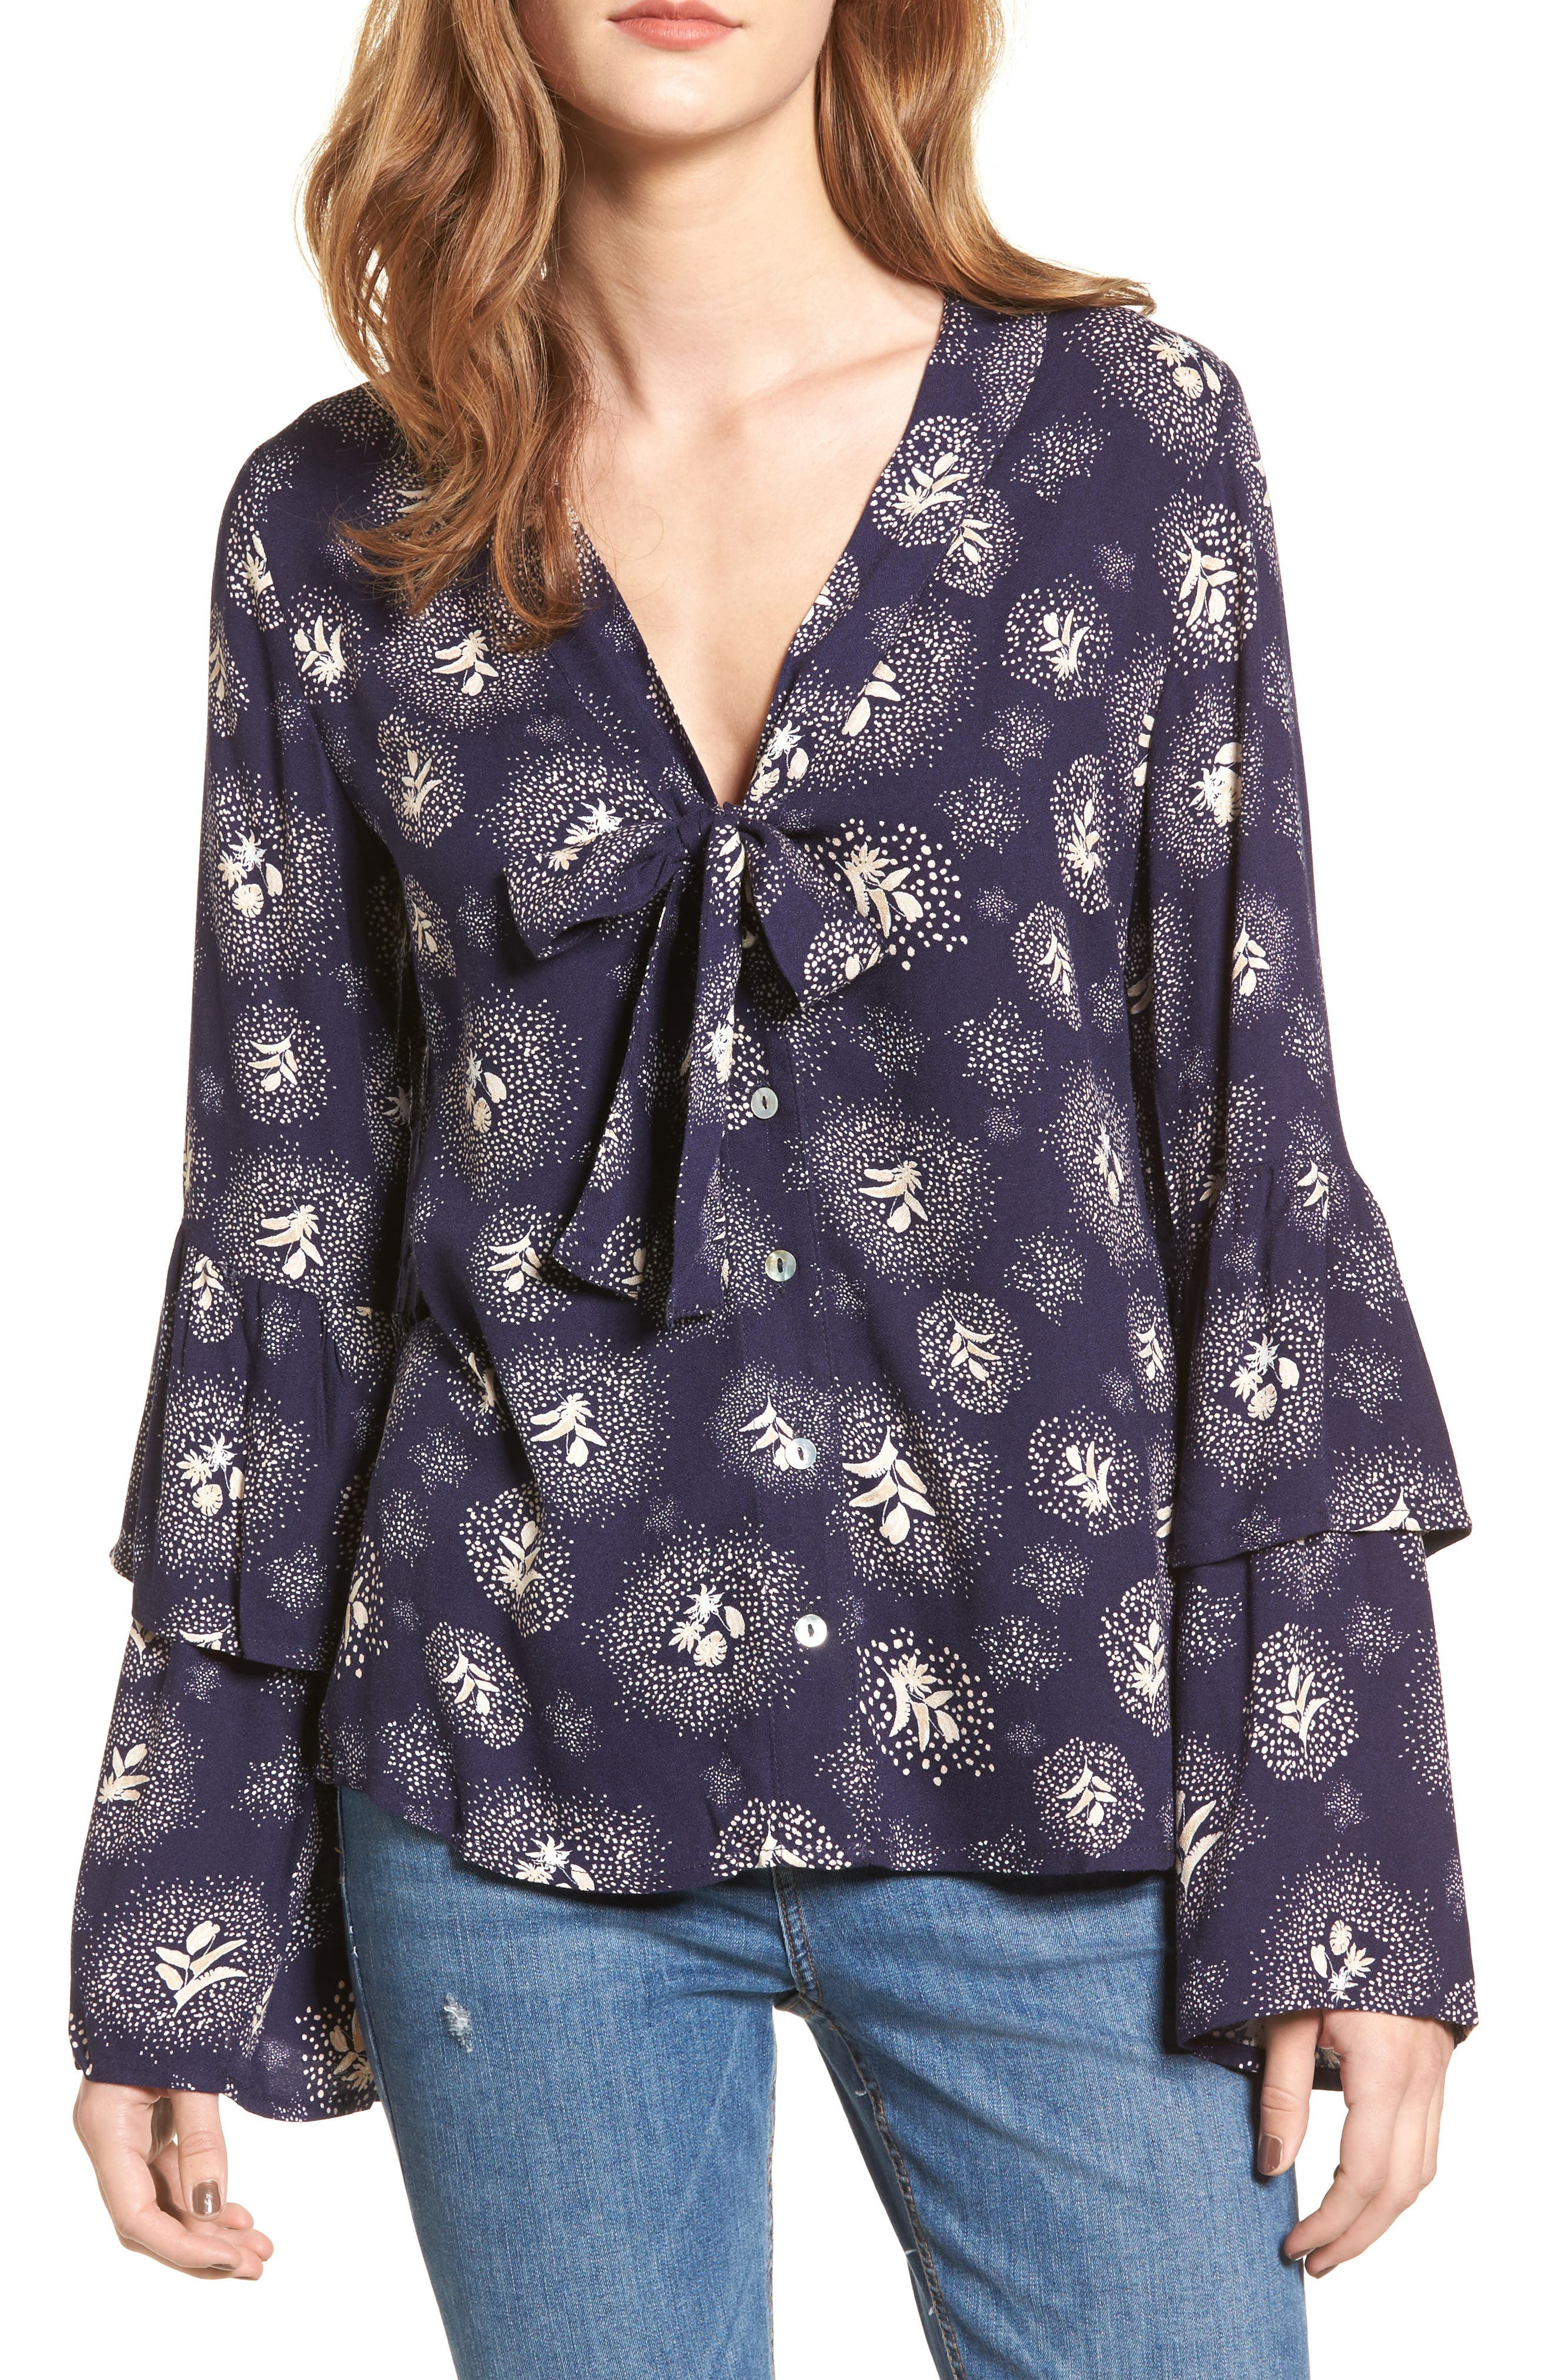 Glimmering Nights Blouse,                         Main,                         color, 400